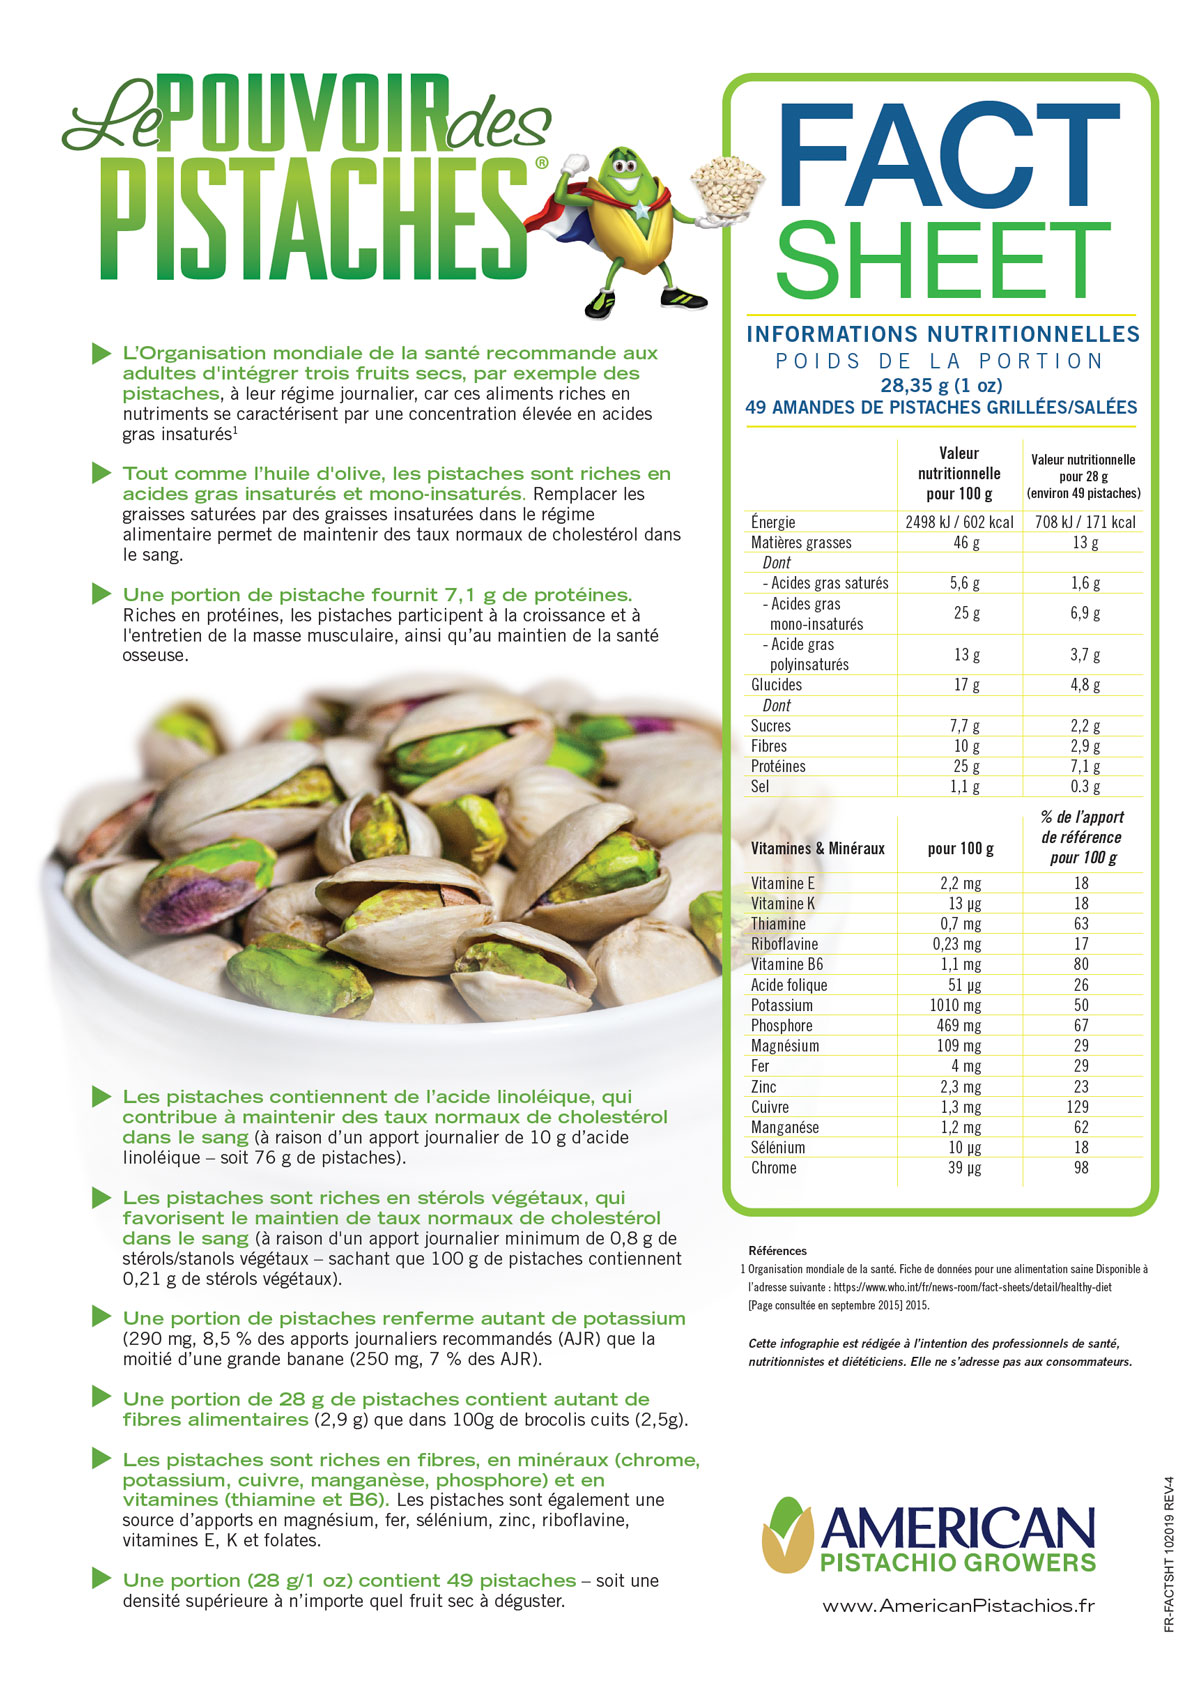 Nutrition Facts Sheet